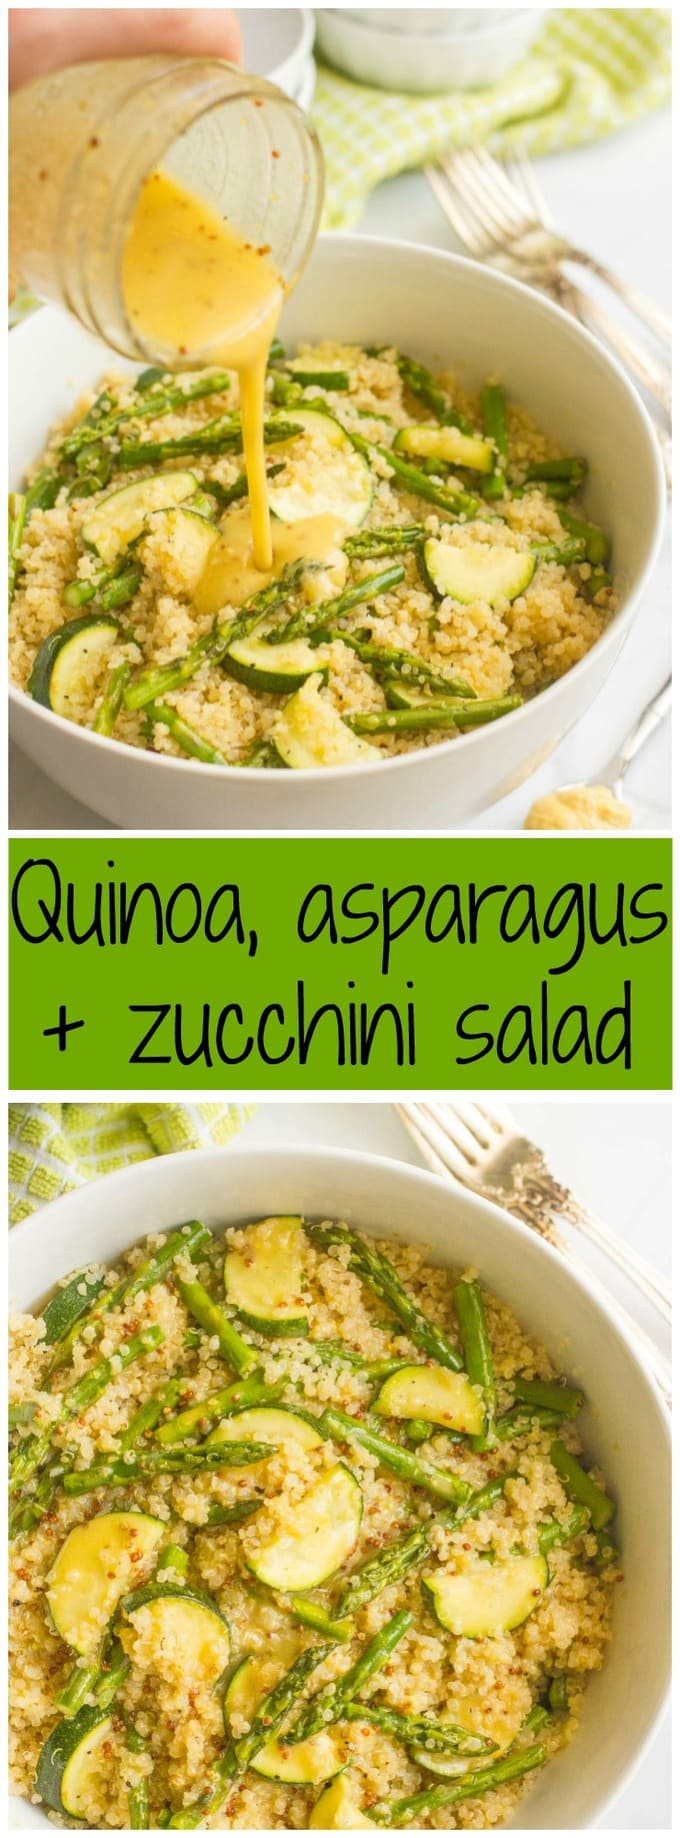 Quinoa asparagus salad with zucchini and a tangy mustard vinaigrette - great for lunch or as a healthy dinner side! {gluten-free, vegan}